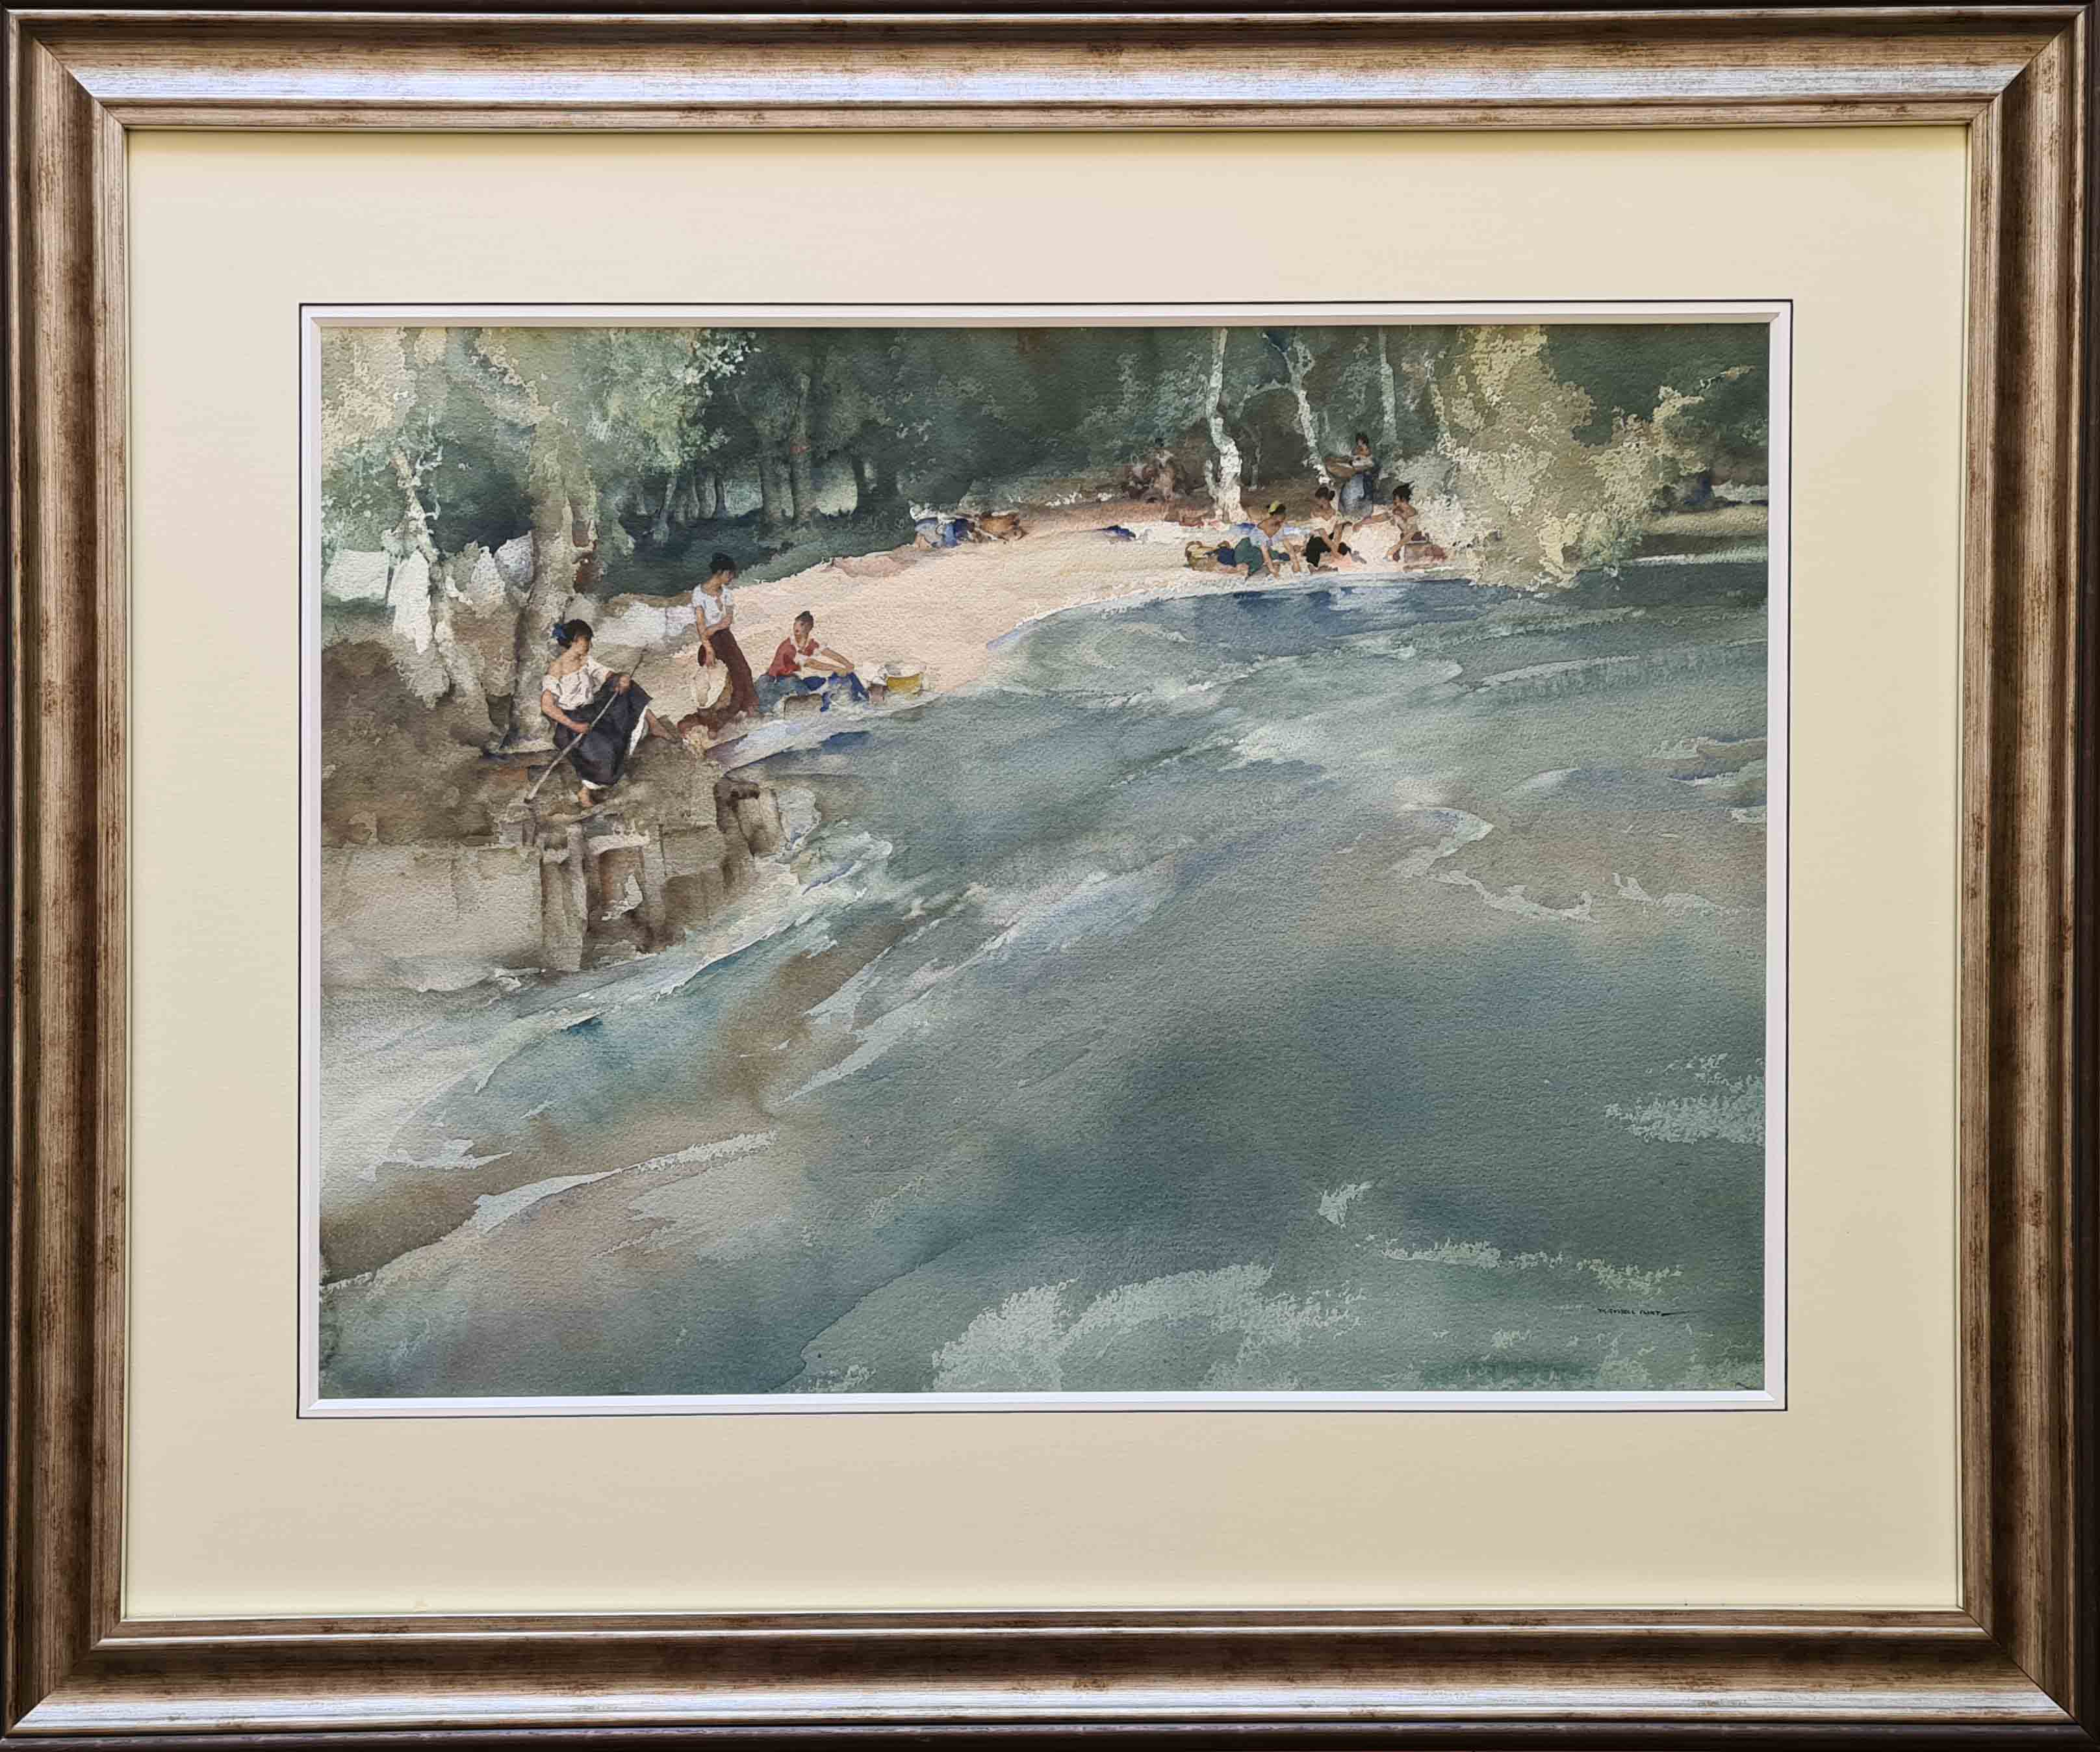 Sir William Russell Flint, original, painting, washerwomen on the Cere at Bretenoux, France